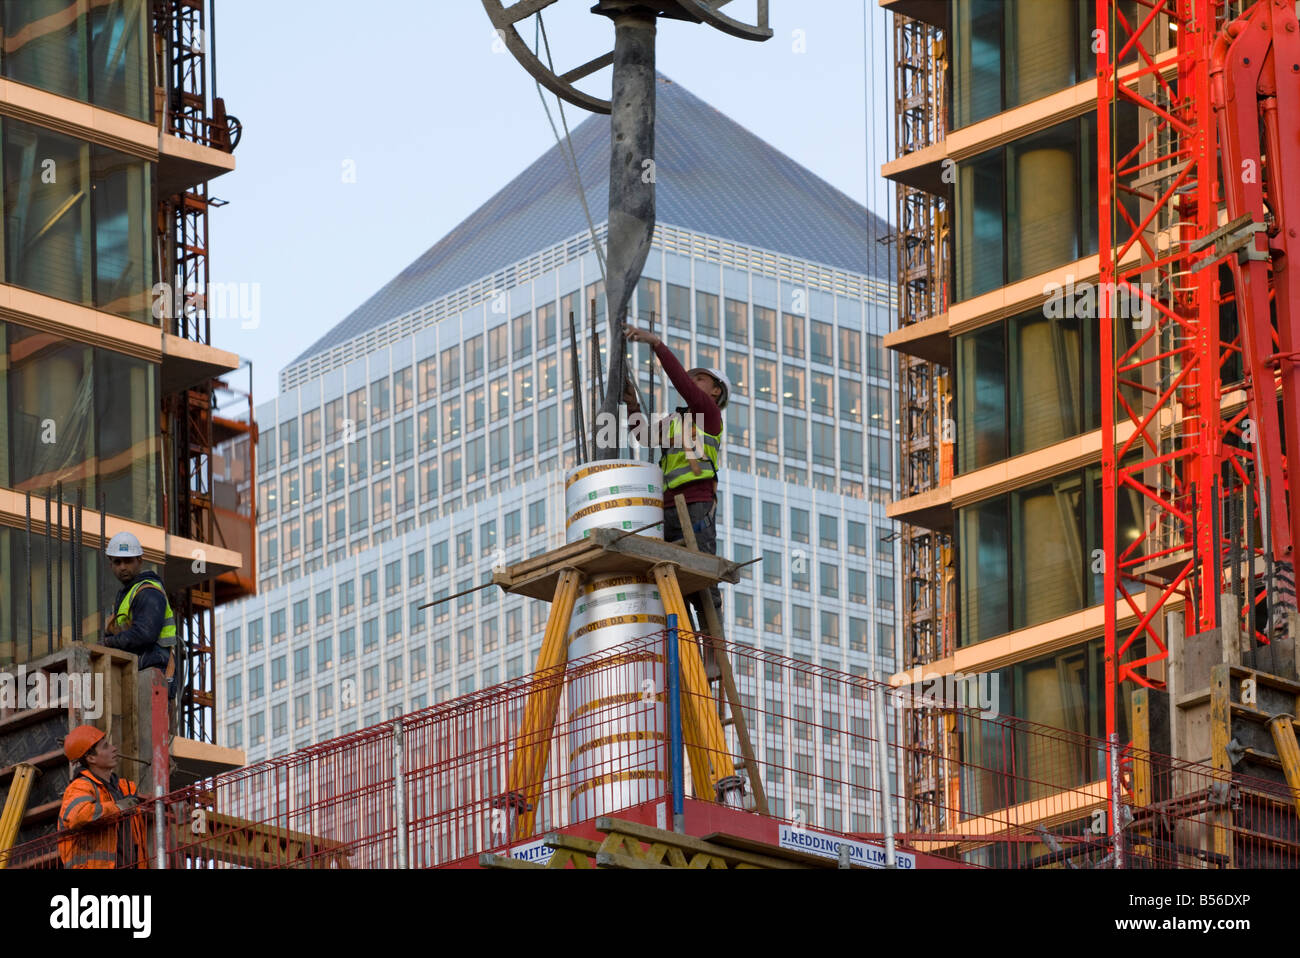 Concrete being pored The Landmark E14 apartments Canary Wharf London under construction. - Stock Image